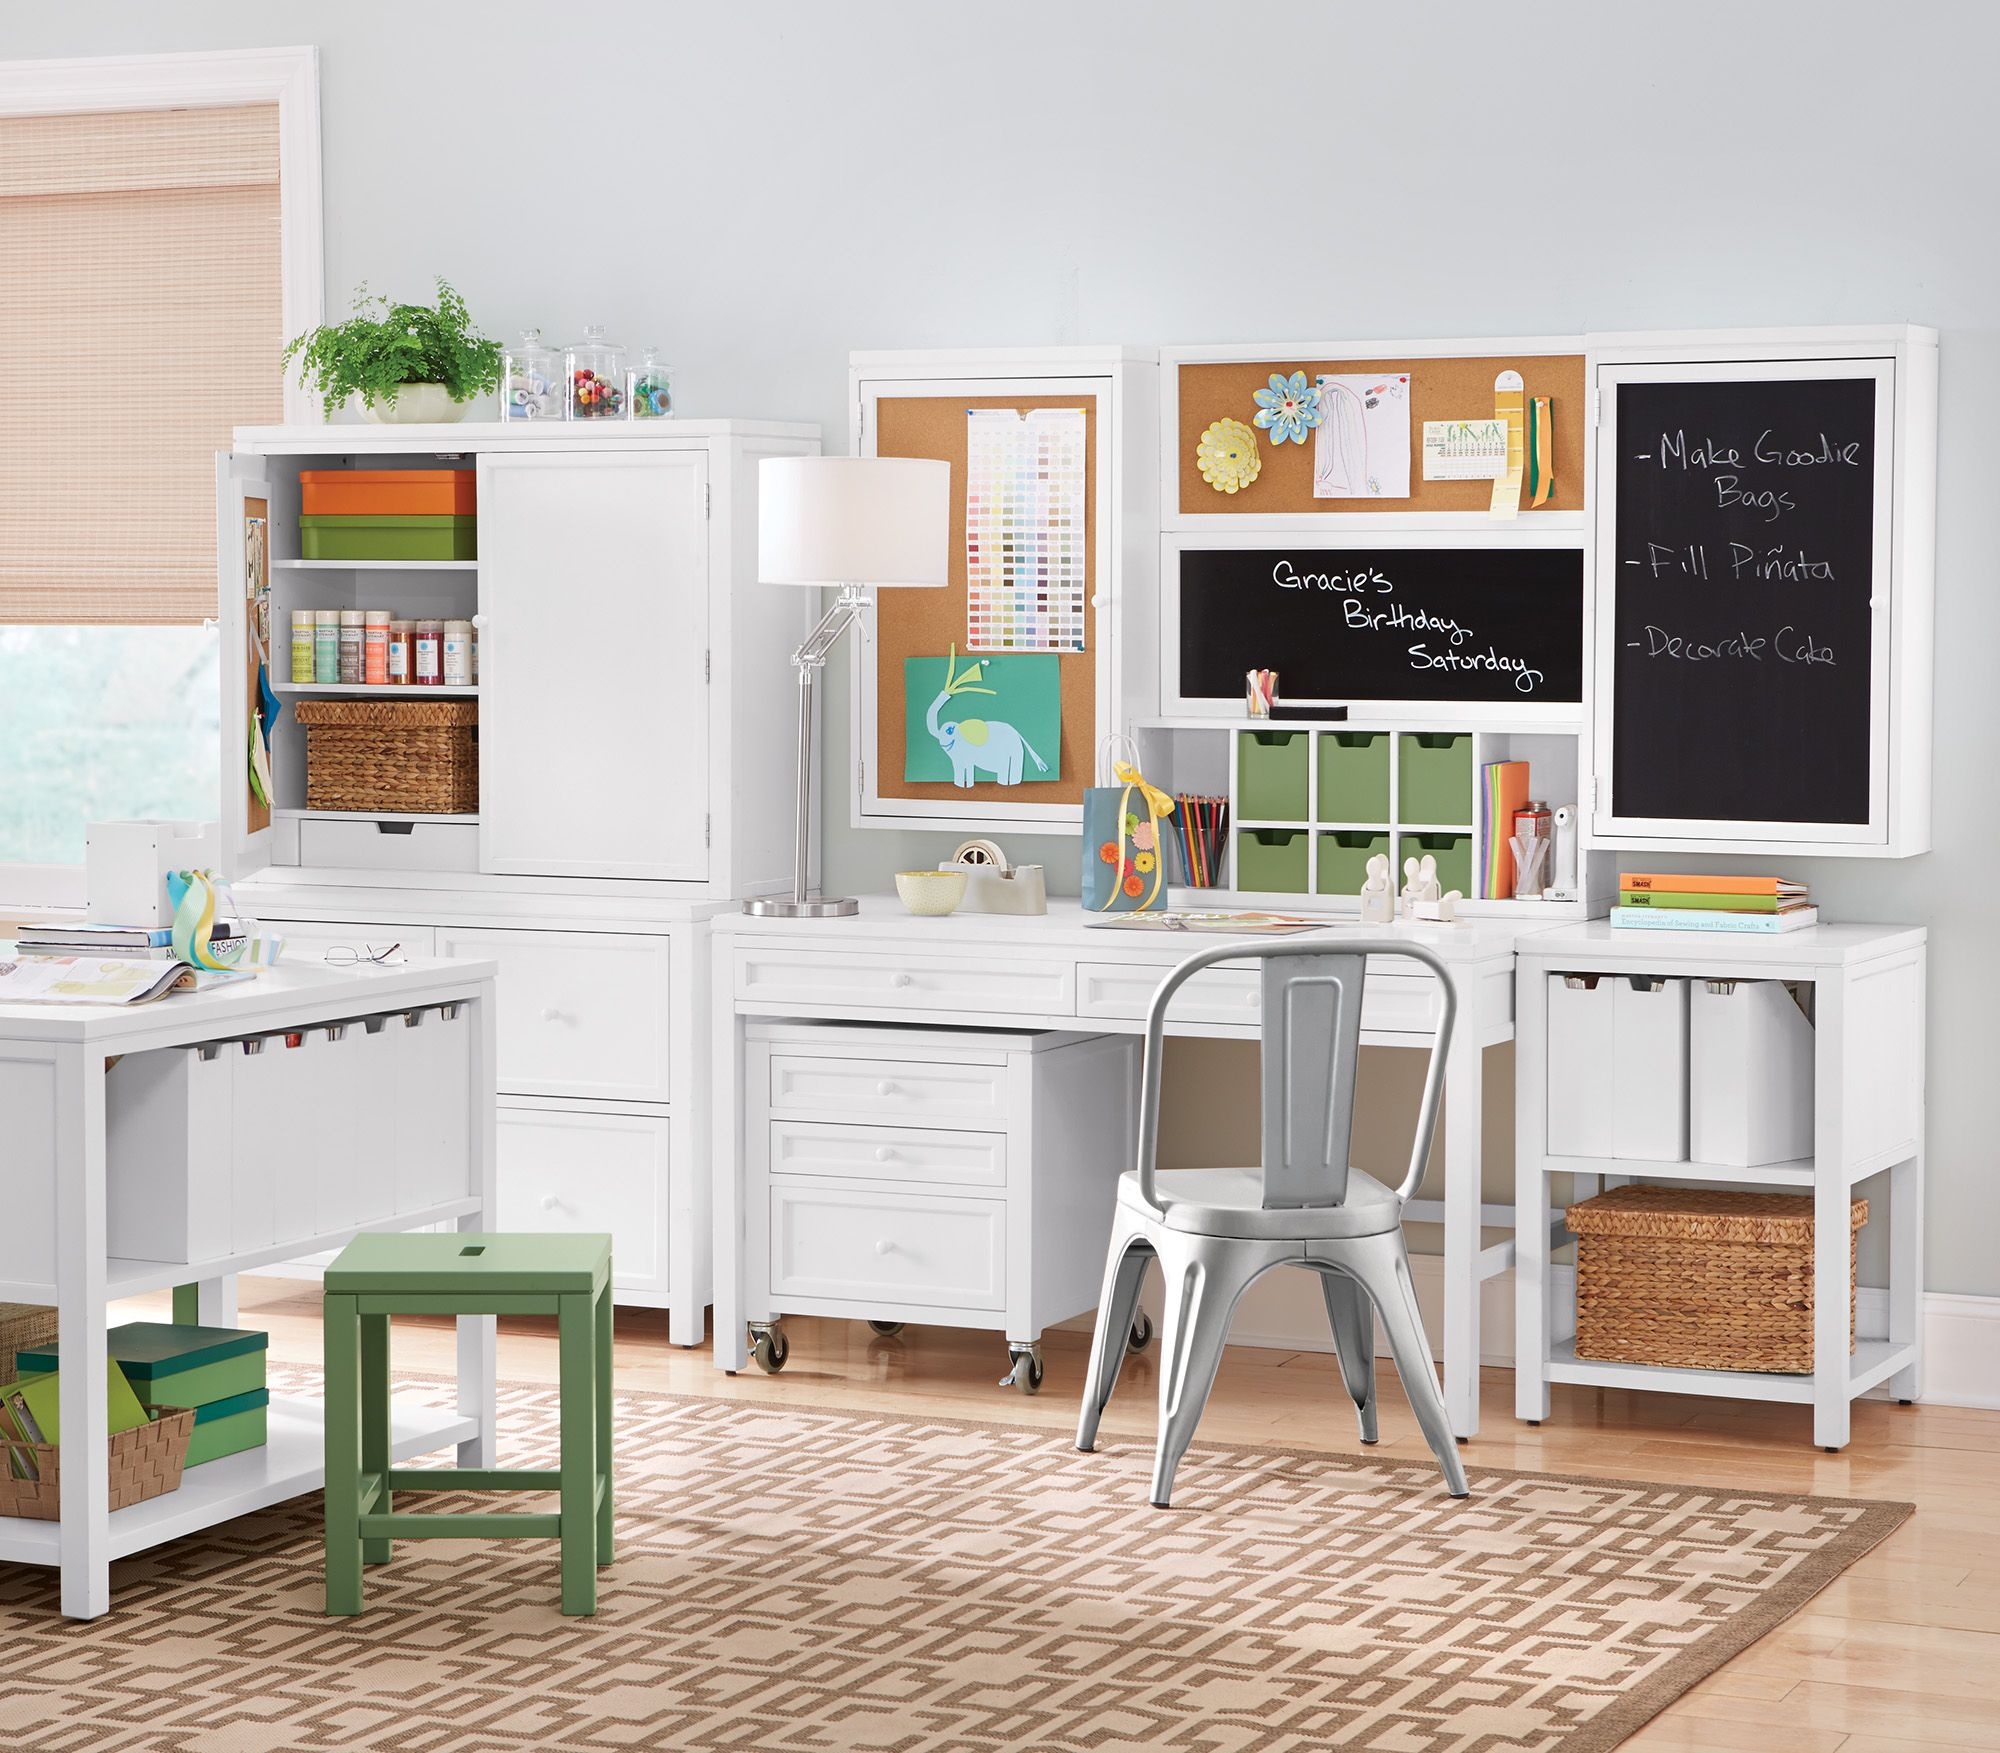 Dream Craft Room Thanks To Our Martha Stewart Living Craft Space